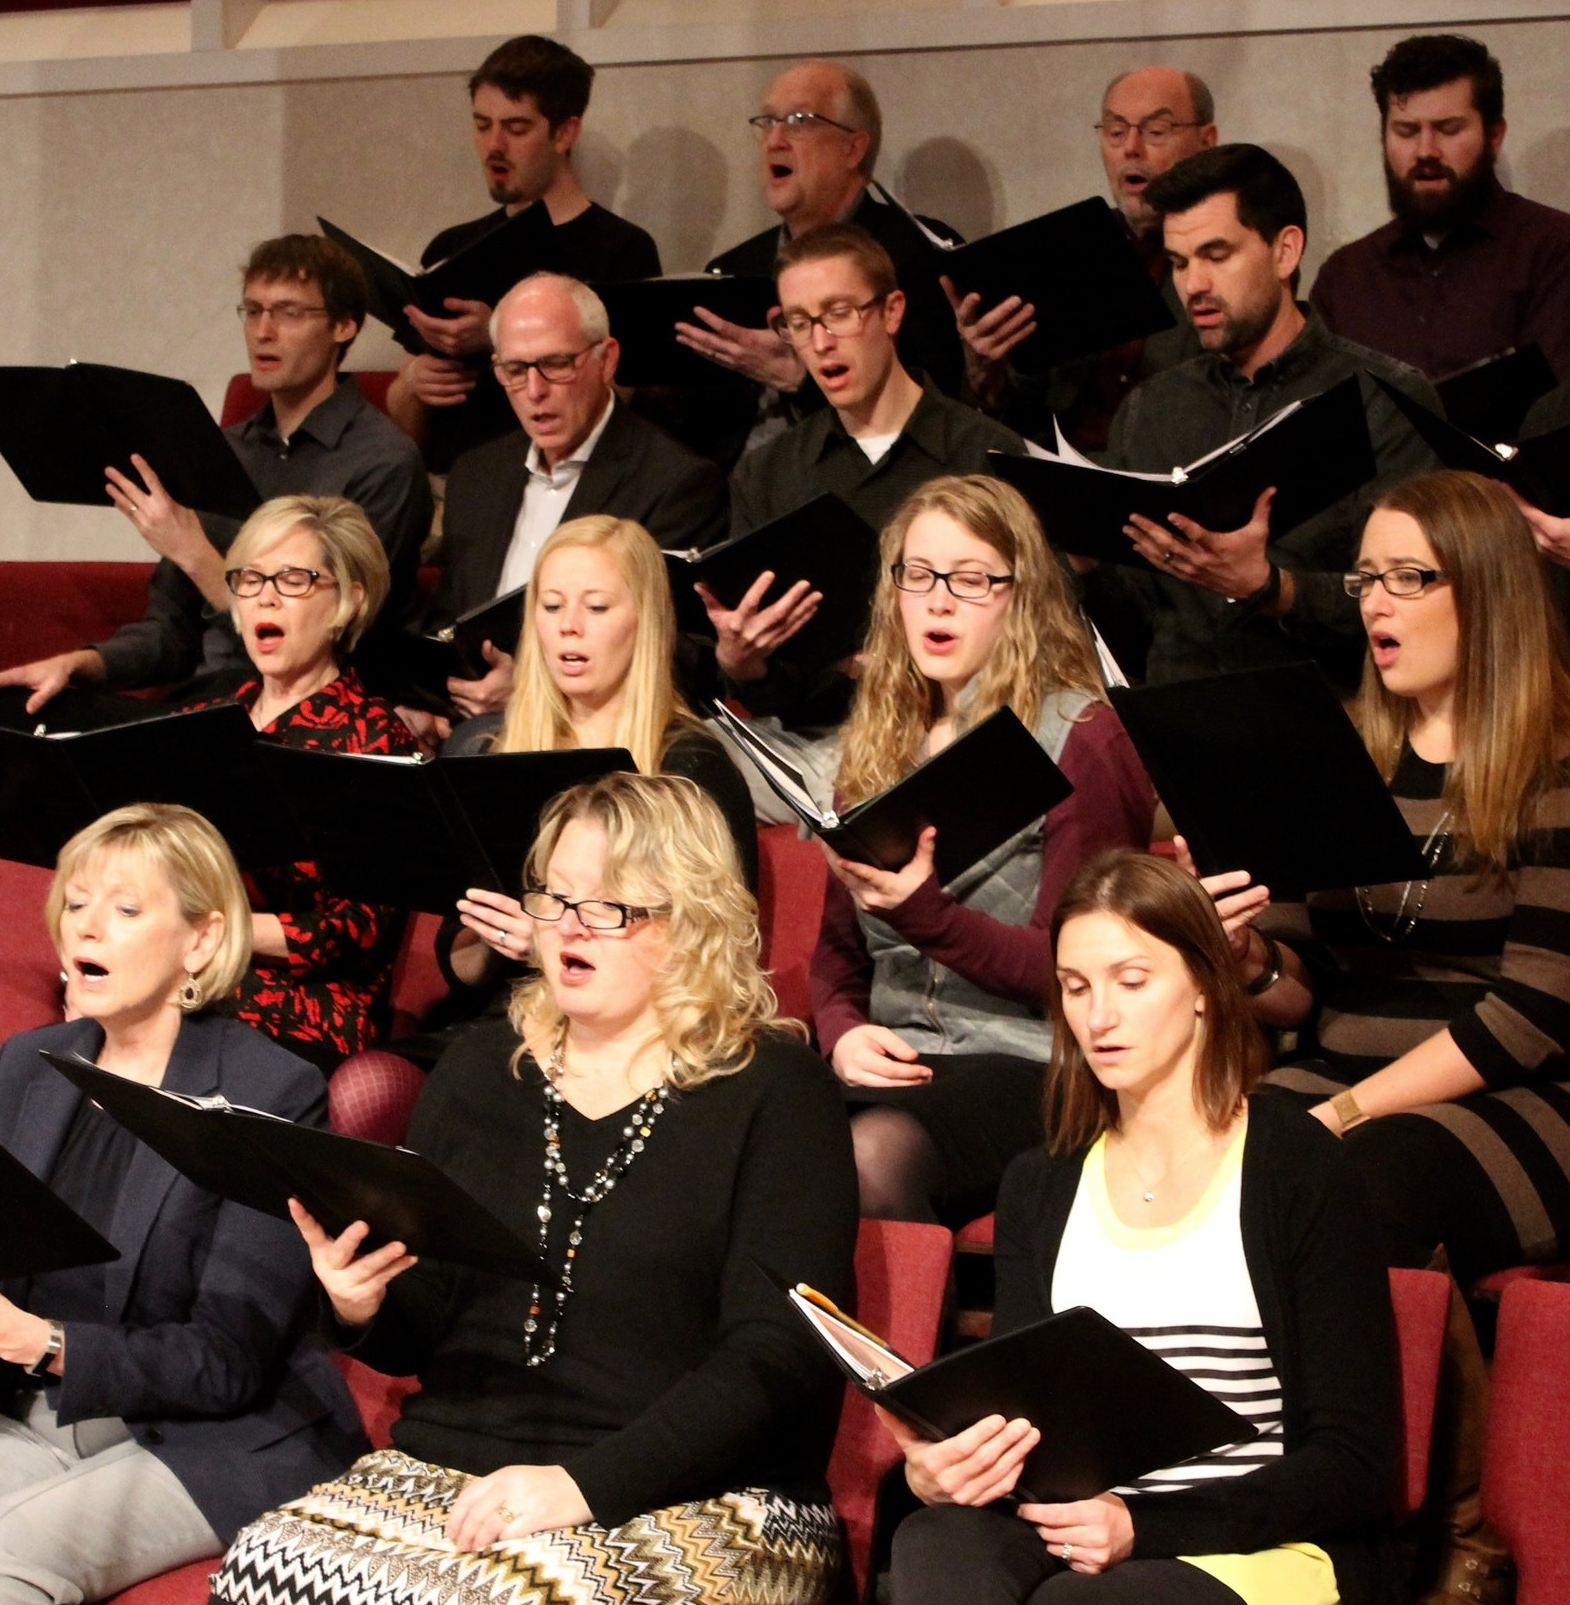 Calvary Choir - The choir rehearses every other Wednesday night during the school year and sings during 1-2 Sunday worship services a month. Childcare is provided during rehearsal. Tim Ribbens has been the choir director since 2002. He enjoys singing but more so enjoys choosing music that will be worshipful. Tim motivates the choir to sing more than just words, to sing the depth and spirit of the words and music in order to maximize the worship of the music.Contact Tim at Tim.Ribbens@bakertilly.com